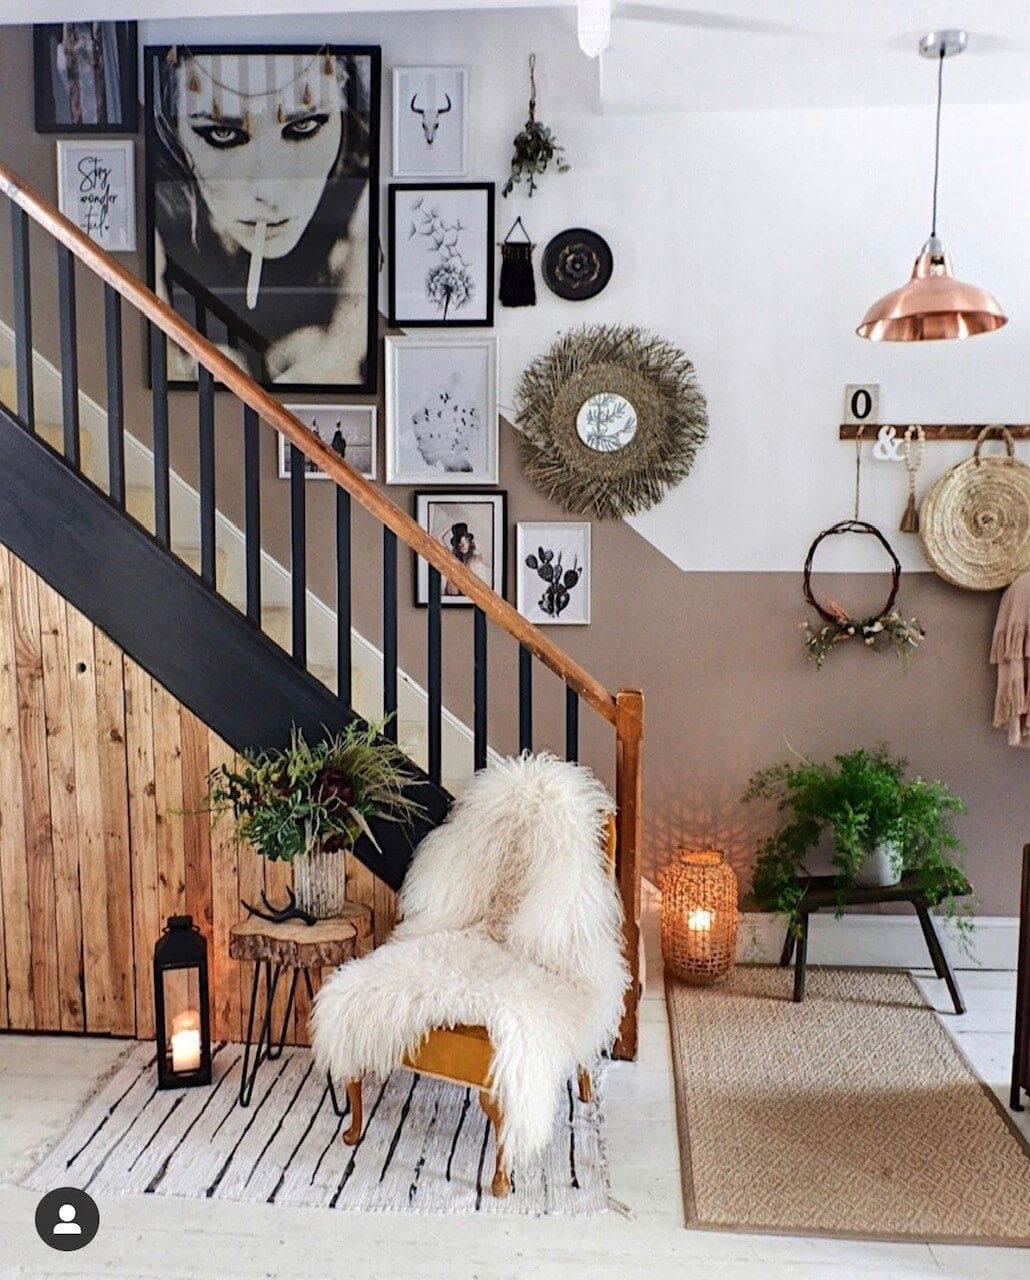 Kyla has created a stunning staircase gallery with hanging plants, wall hangings and a reeded mirror, keeping it all monochrome. Instagram: @kylamagrathinteriors